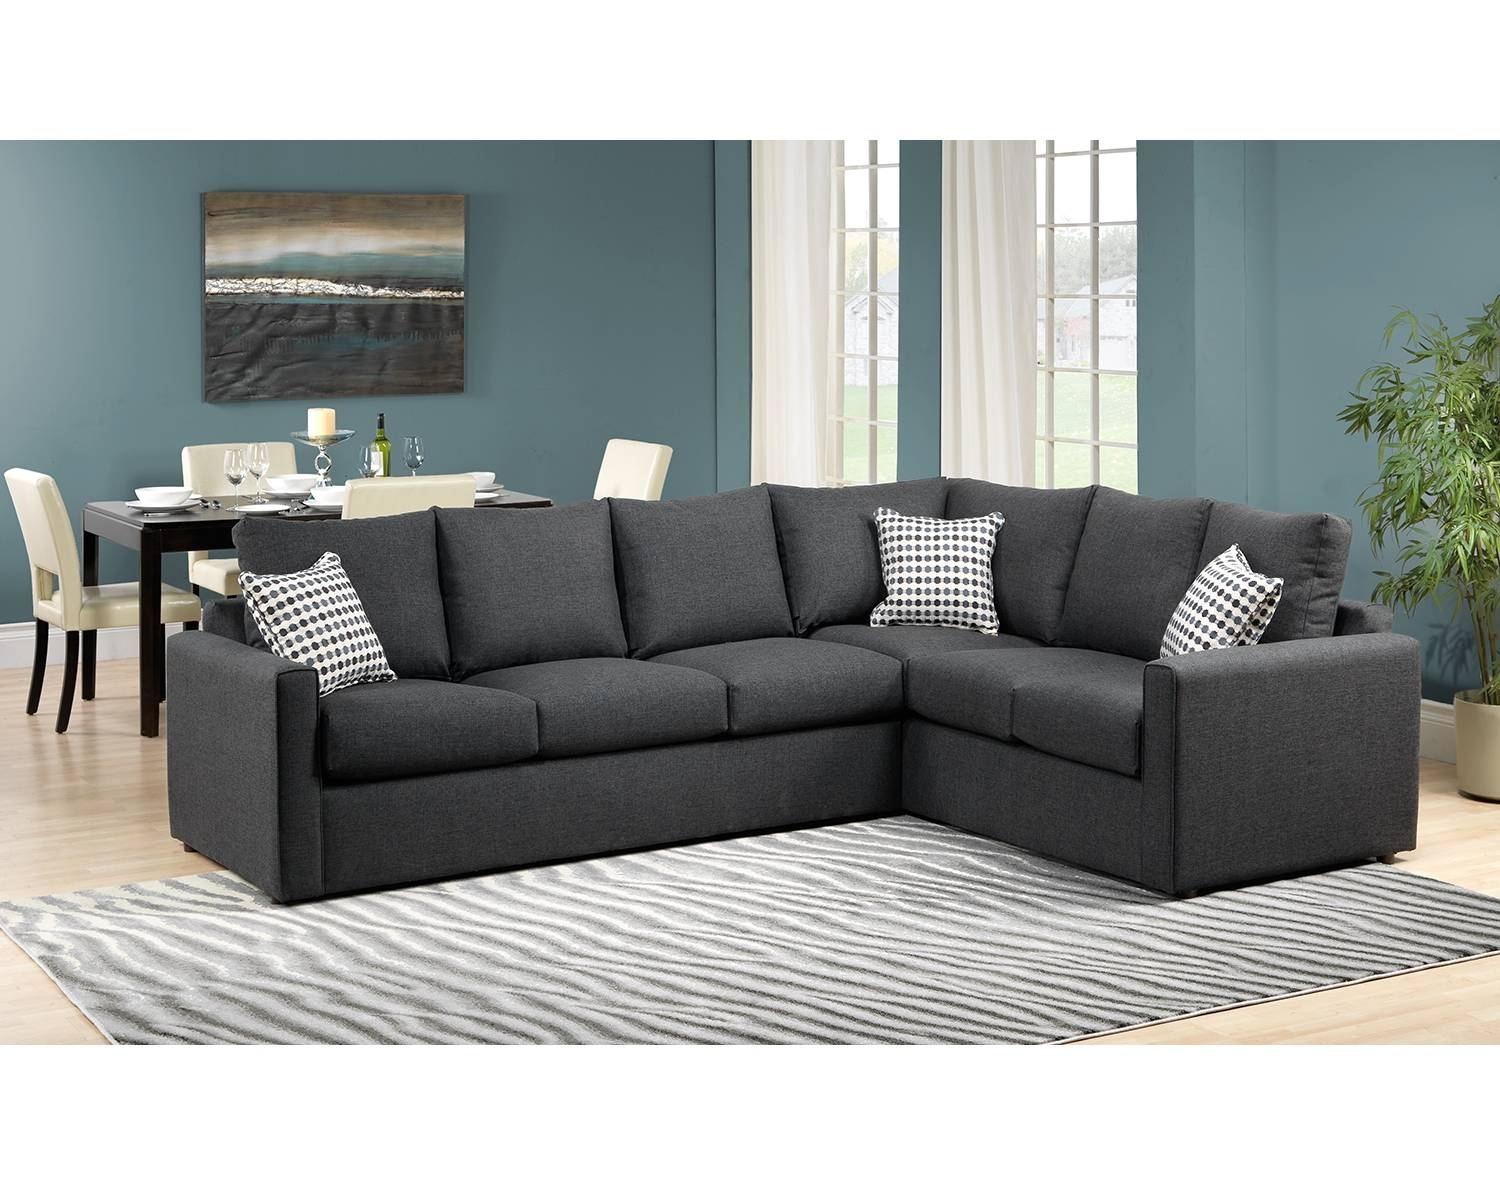 Best Cheap Sofa Bed Sectionals 21 On Diana Dark Brown Leather inside Diana Dark Brown Leather Sectional Sofa Set (Image 9 of 30)